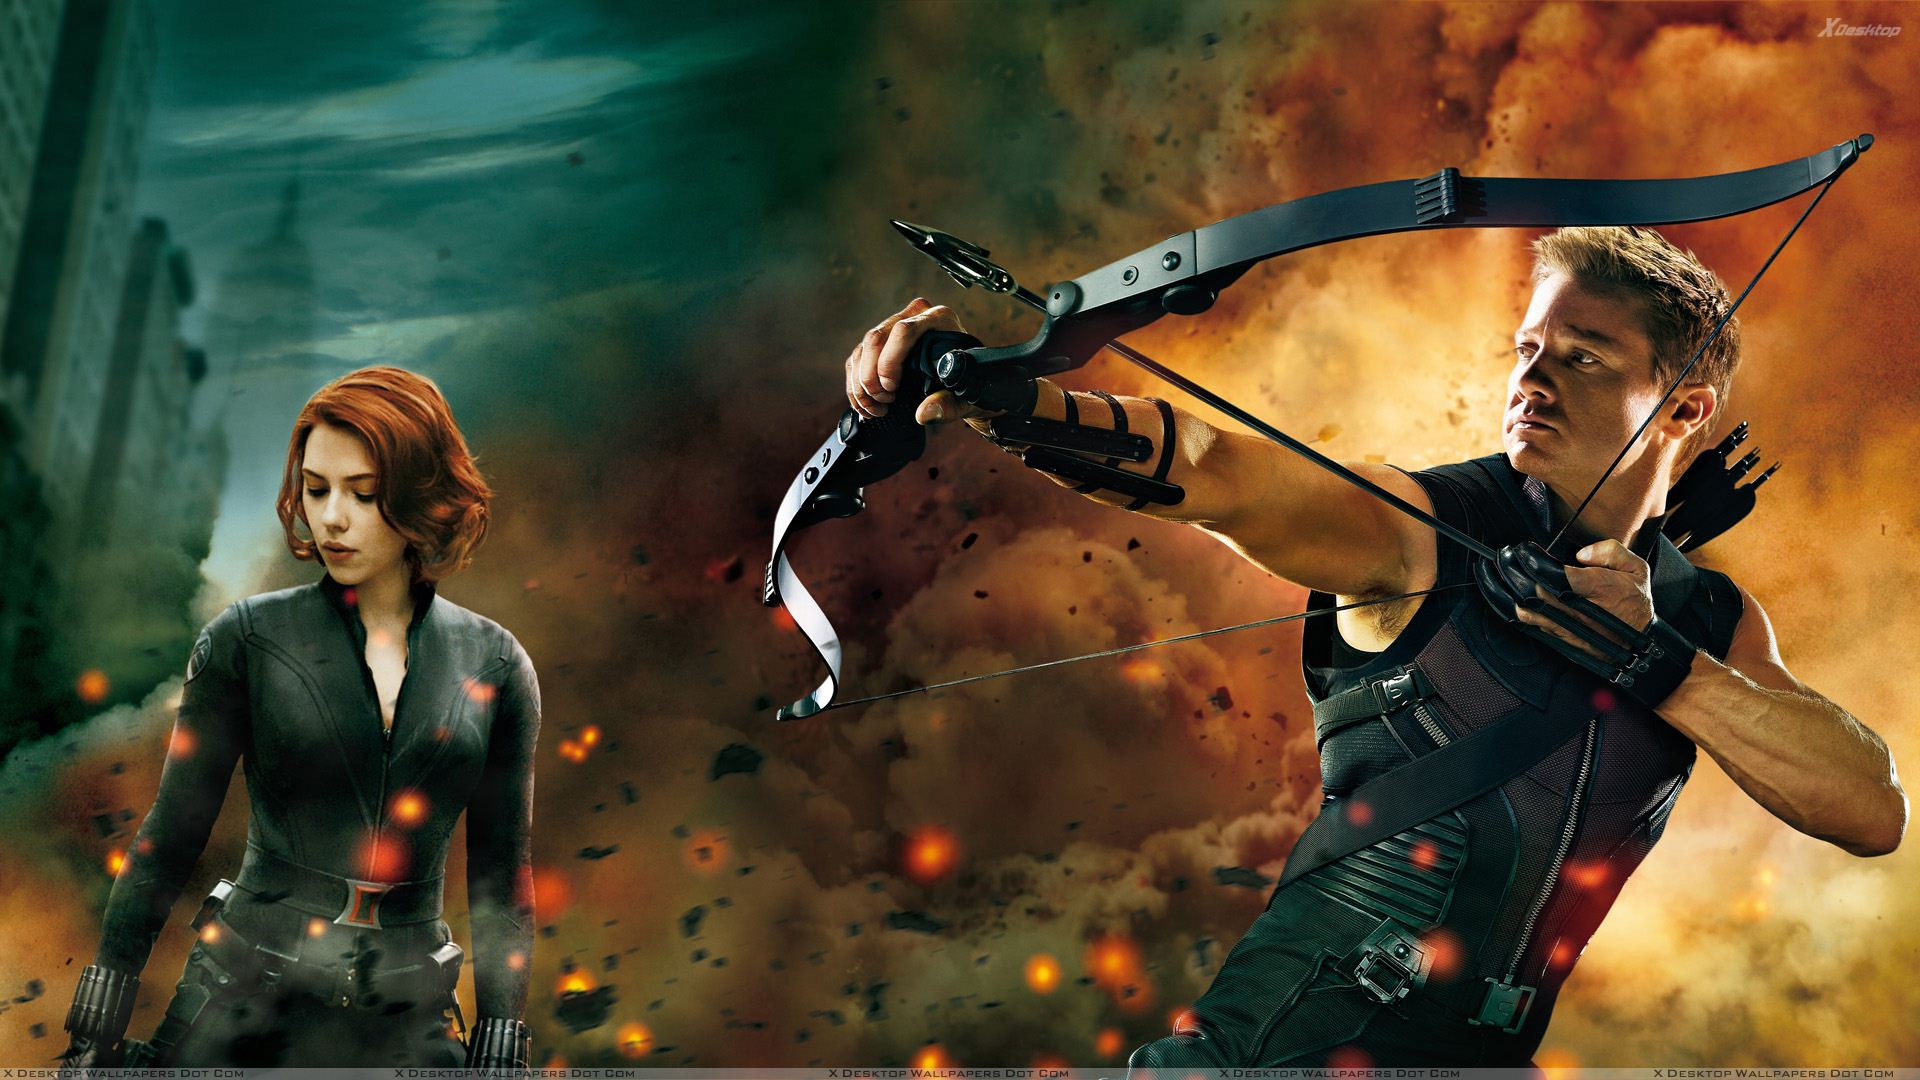 You Are Viewing Wallpaper Titled The Avengers Scarlett Johansson And Jeremy Renner Aiming